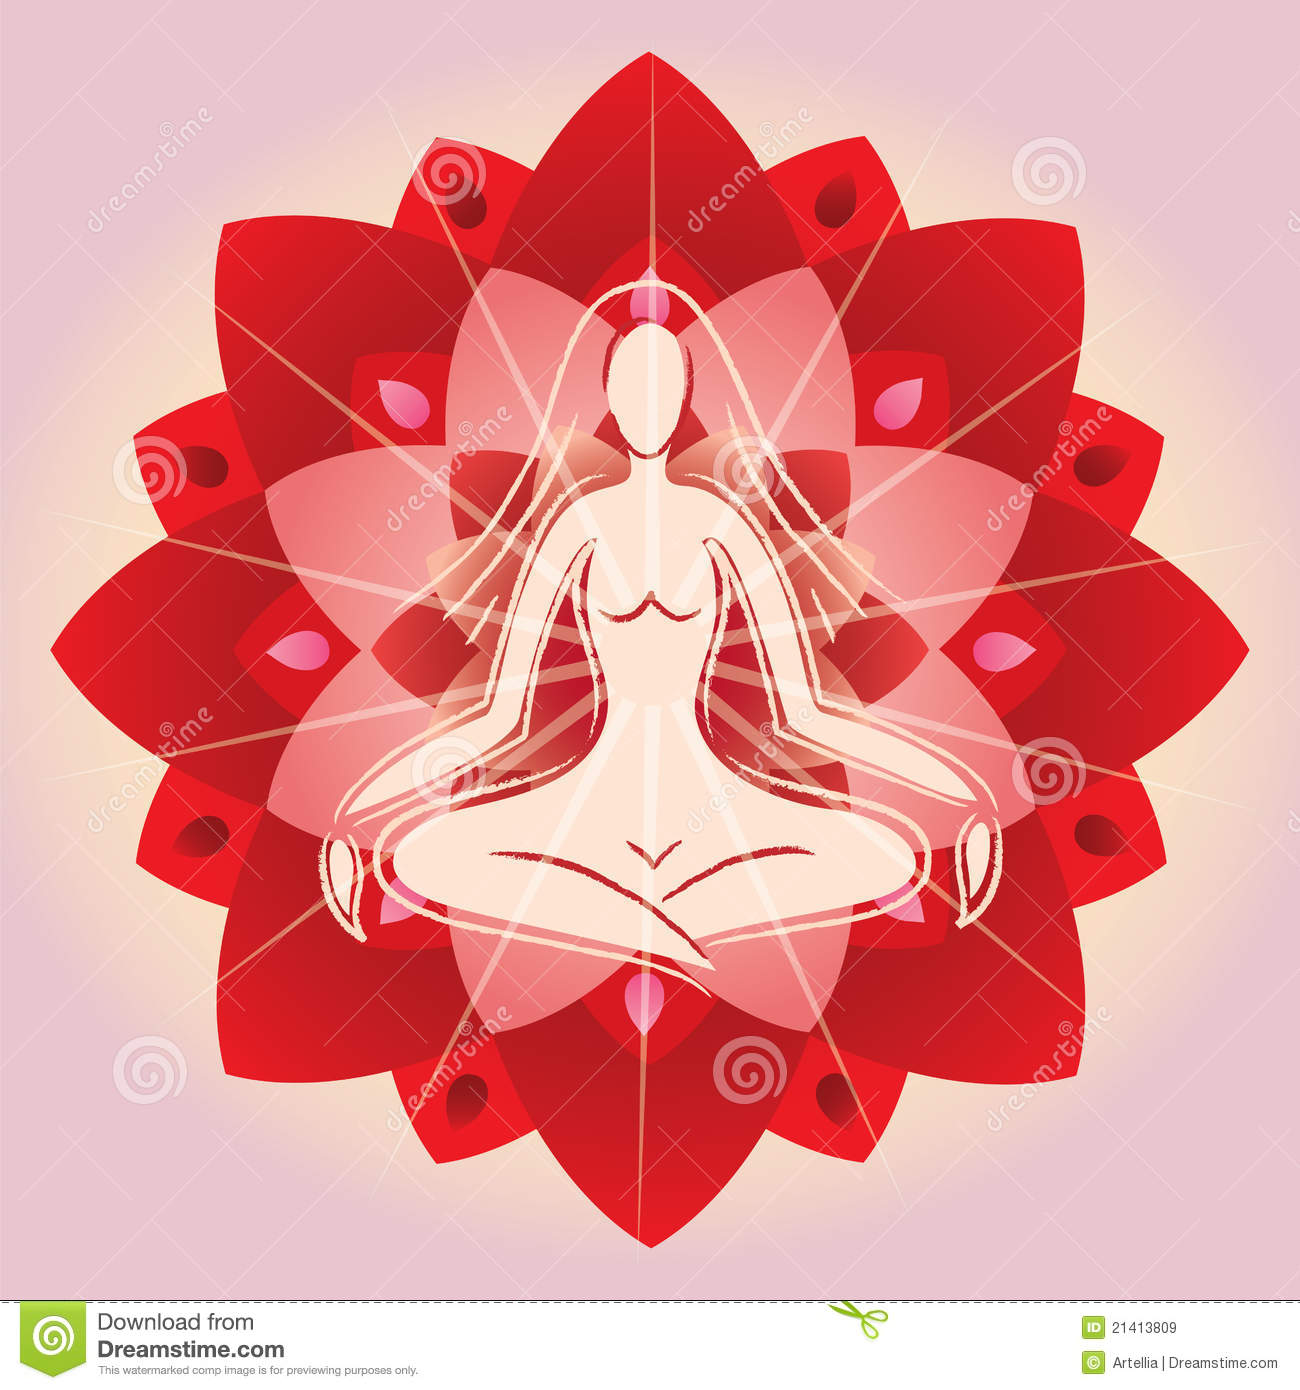 Woman Meditating On Lotus Flower Background Stock Vector ...